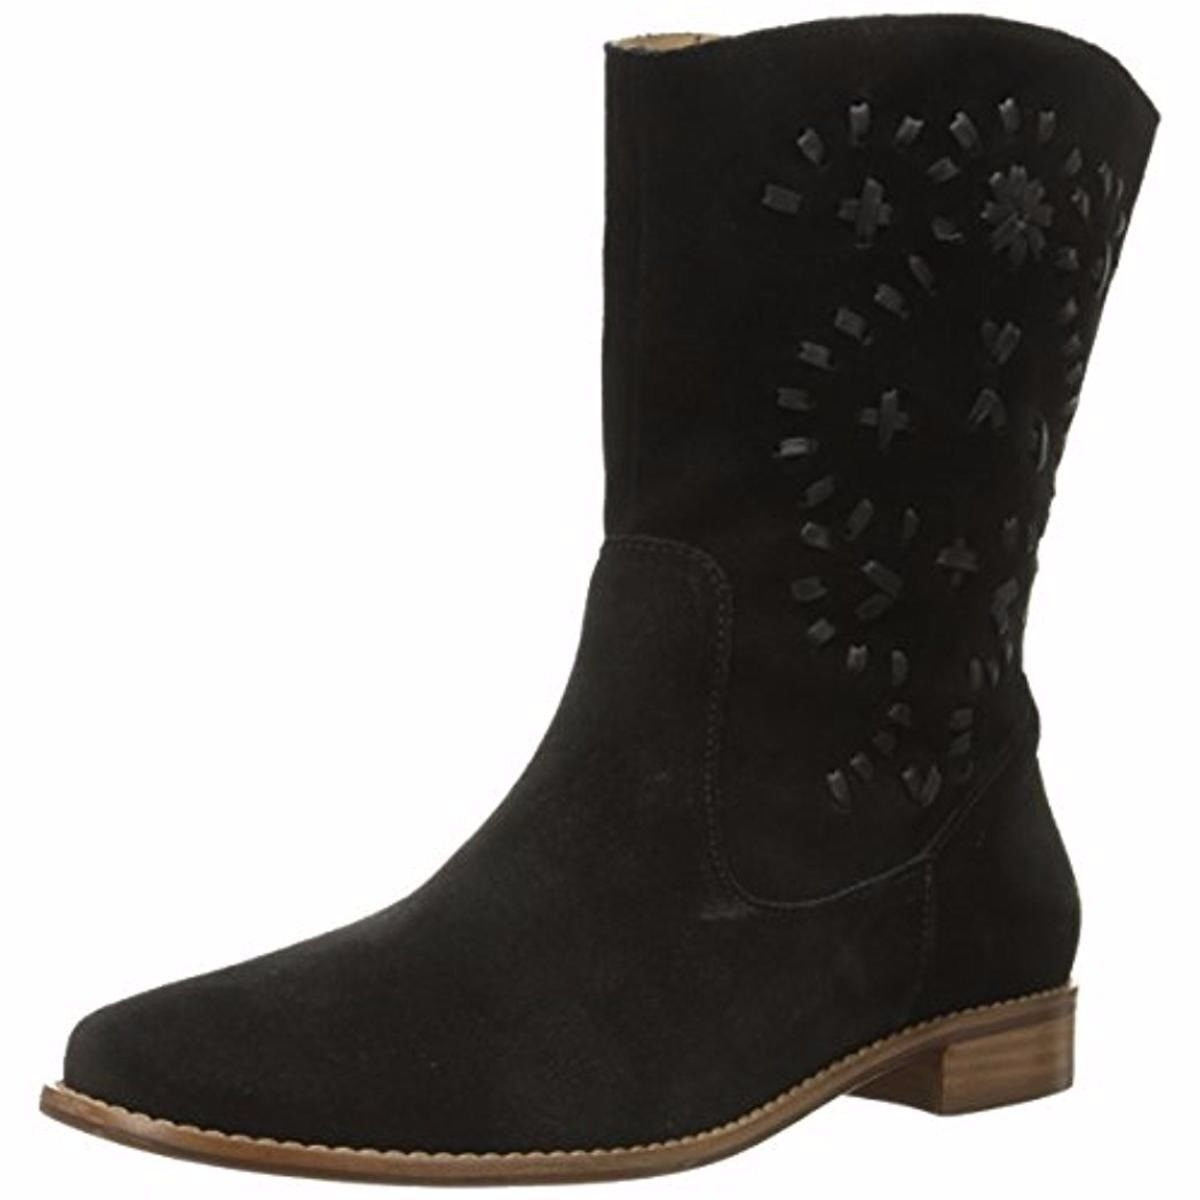 $248 NEW Jack Rogers KAITLIN Suede Boots Black Stitches Mid Calf Shoes 6